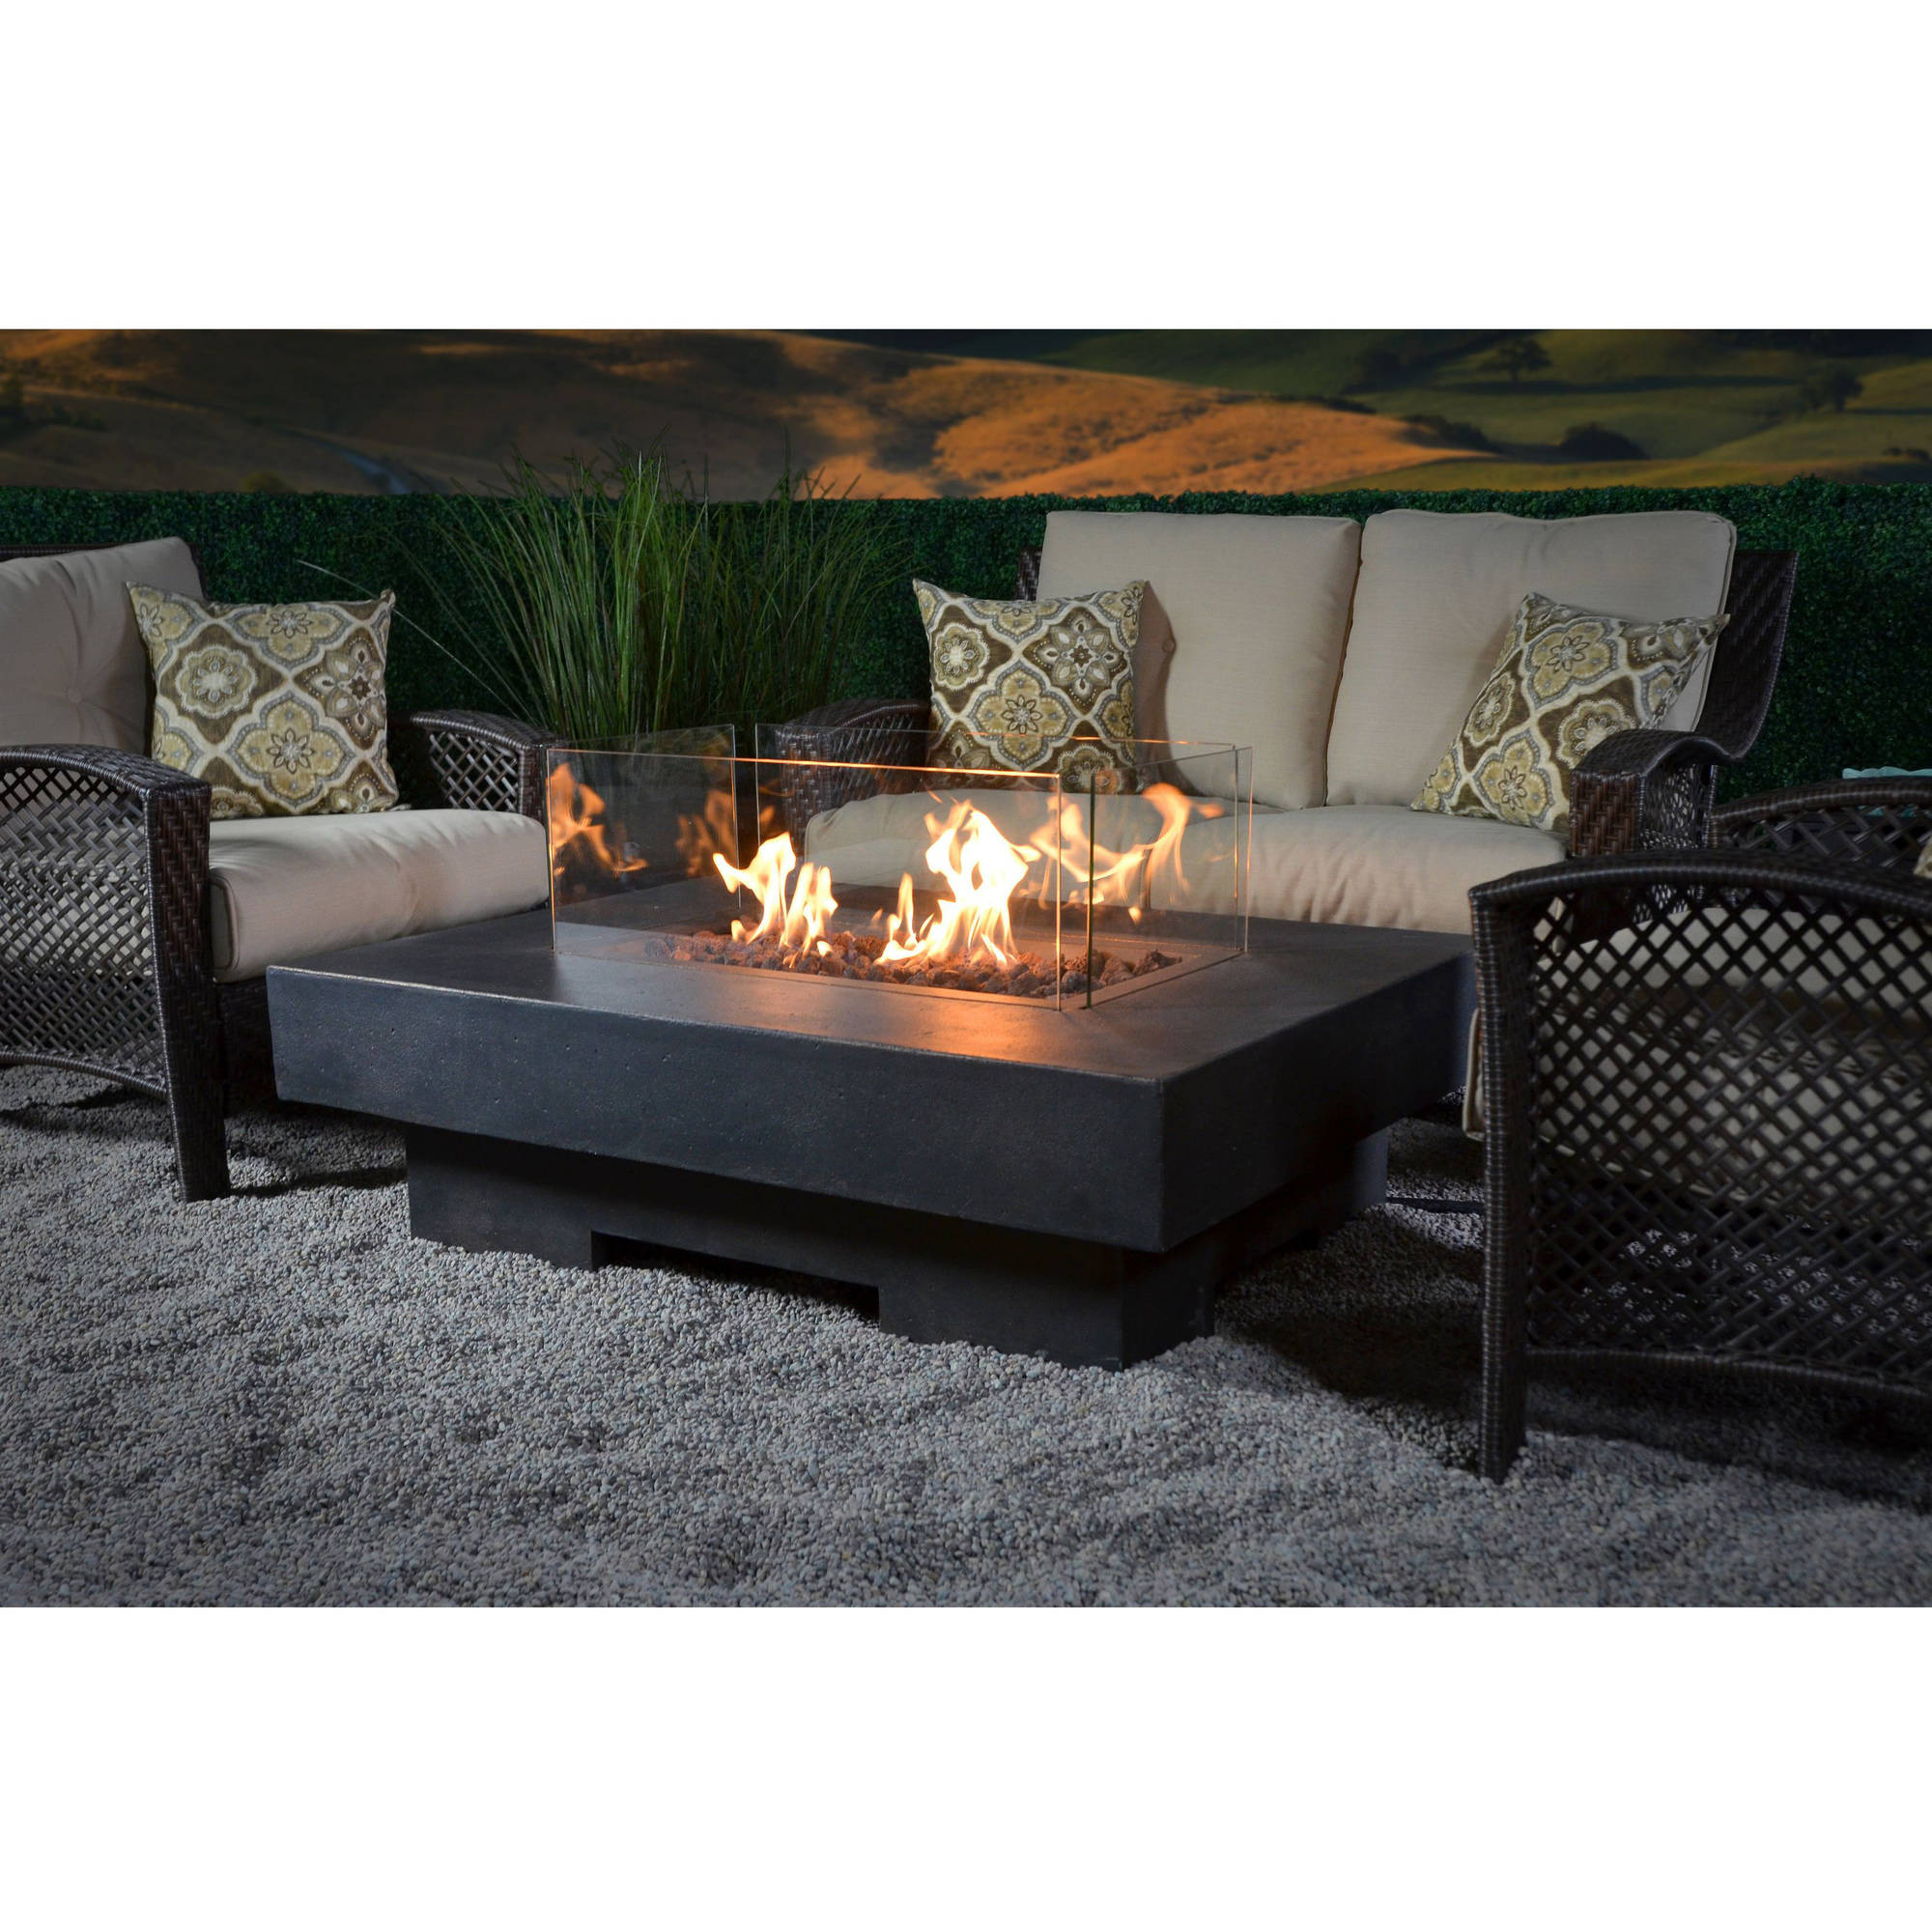 Better Homes and Gardens Mason Heights Gas Fire Pit Walmartcom